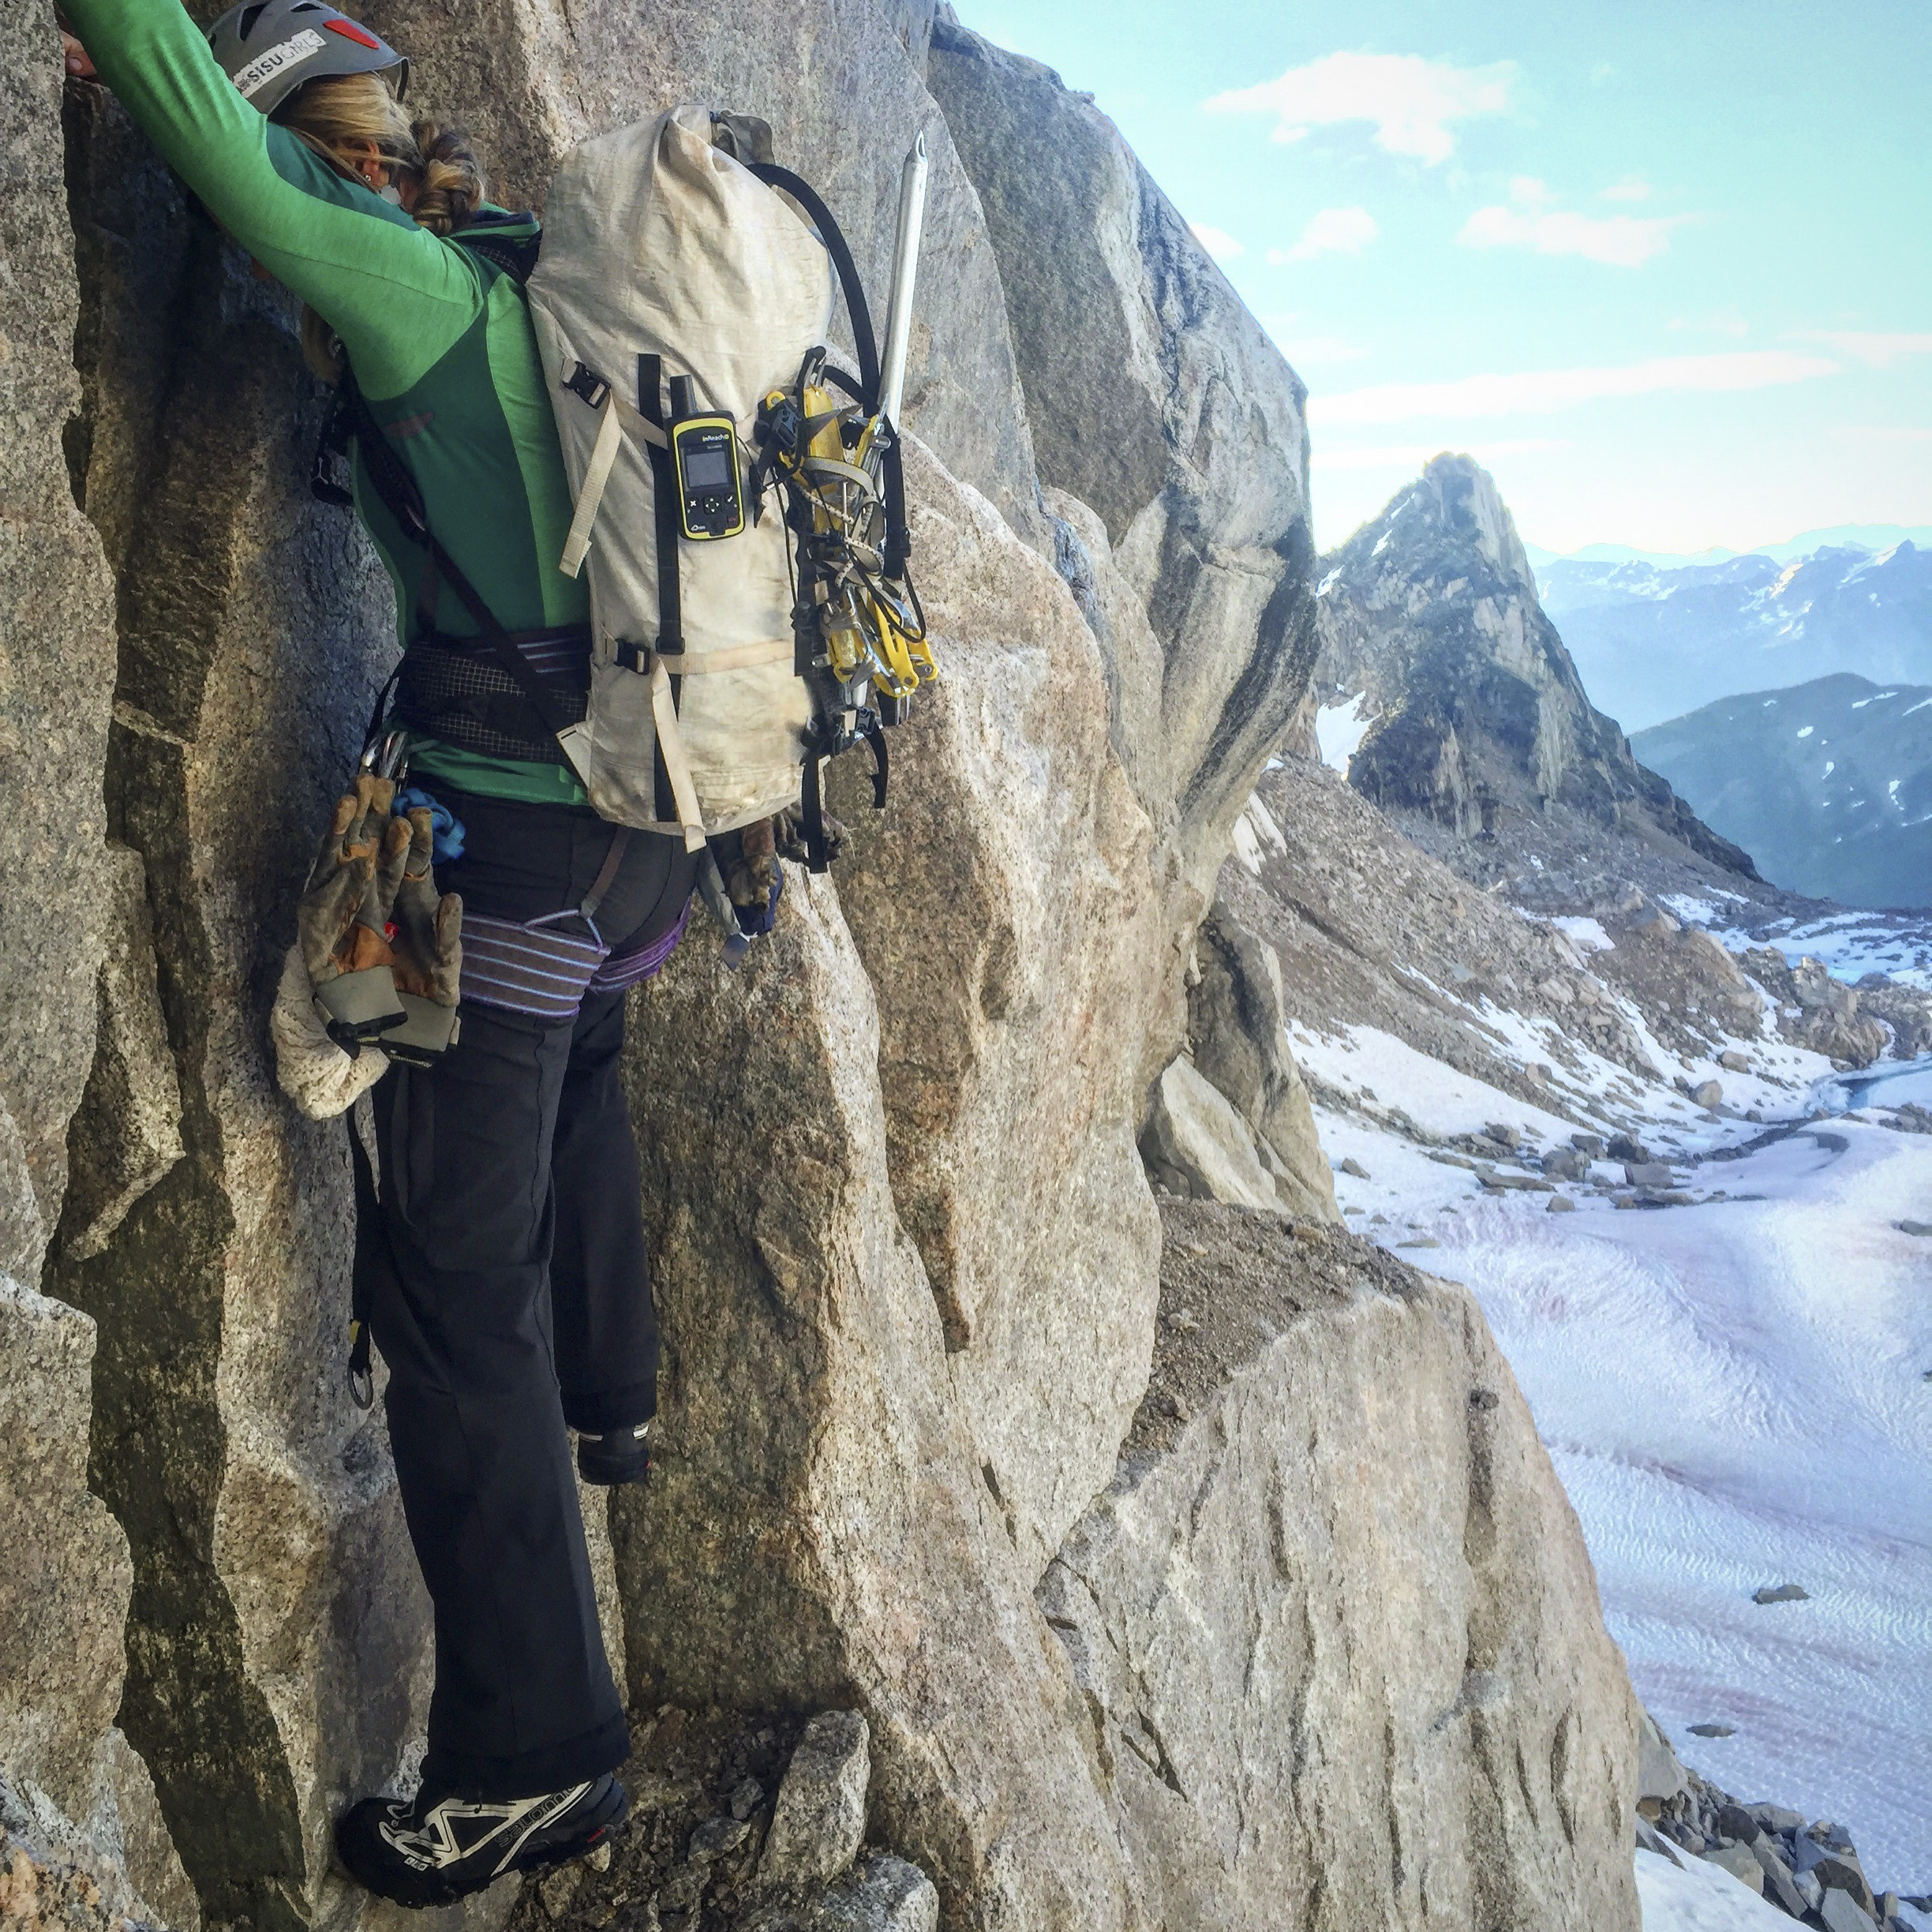 Soloing low 5th class terrain on approach to the NE Ridge of Bugaboo Spire, one of the 50 Classic Climbs.